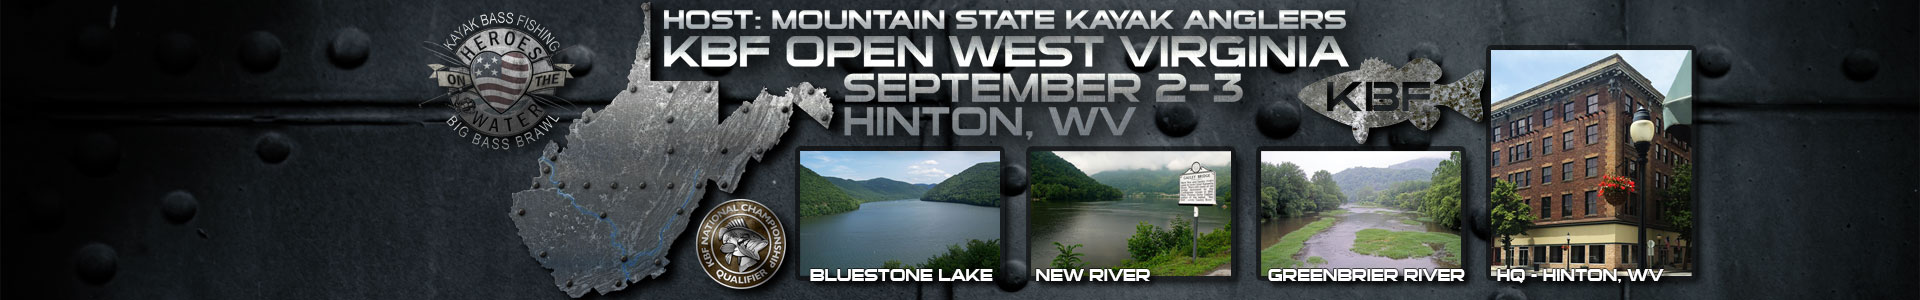 KBF OPEN Sept 2-3, Hinton, WV